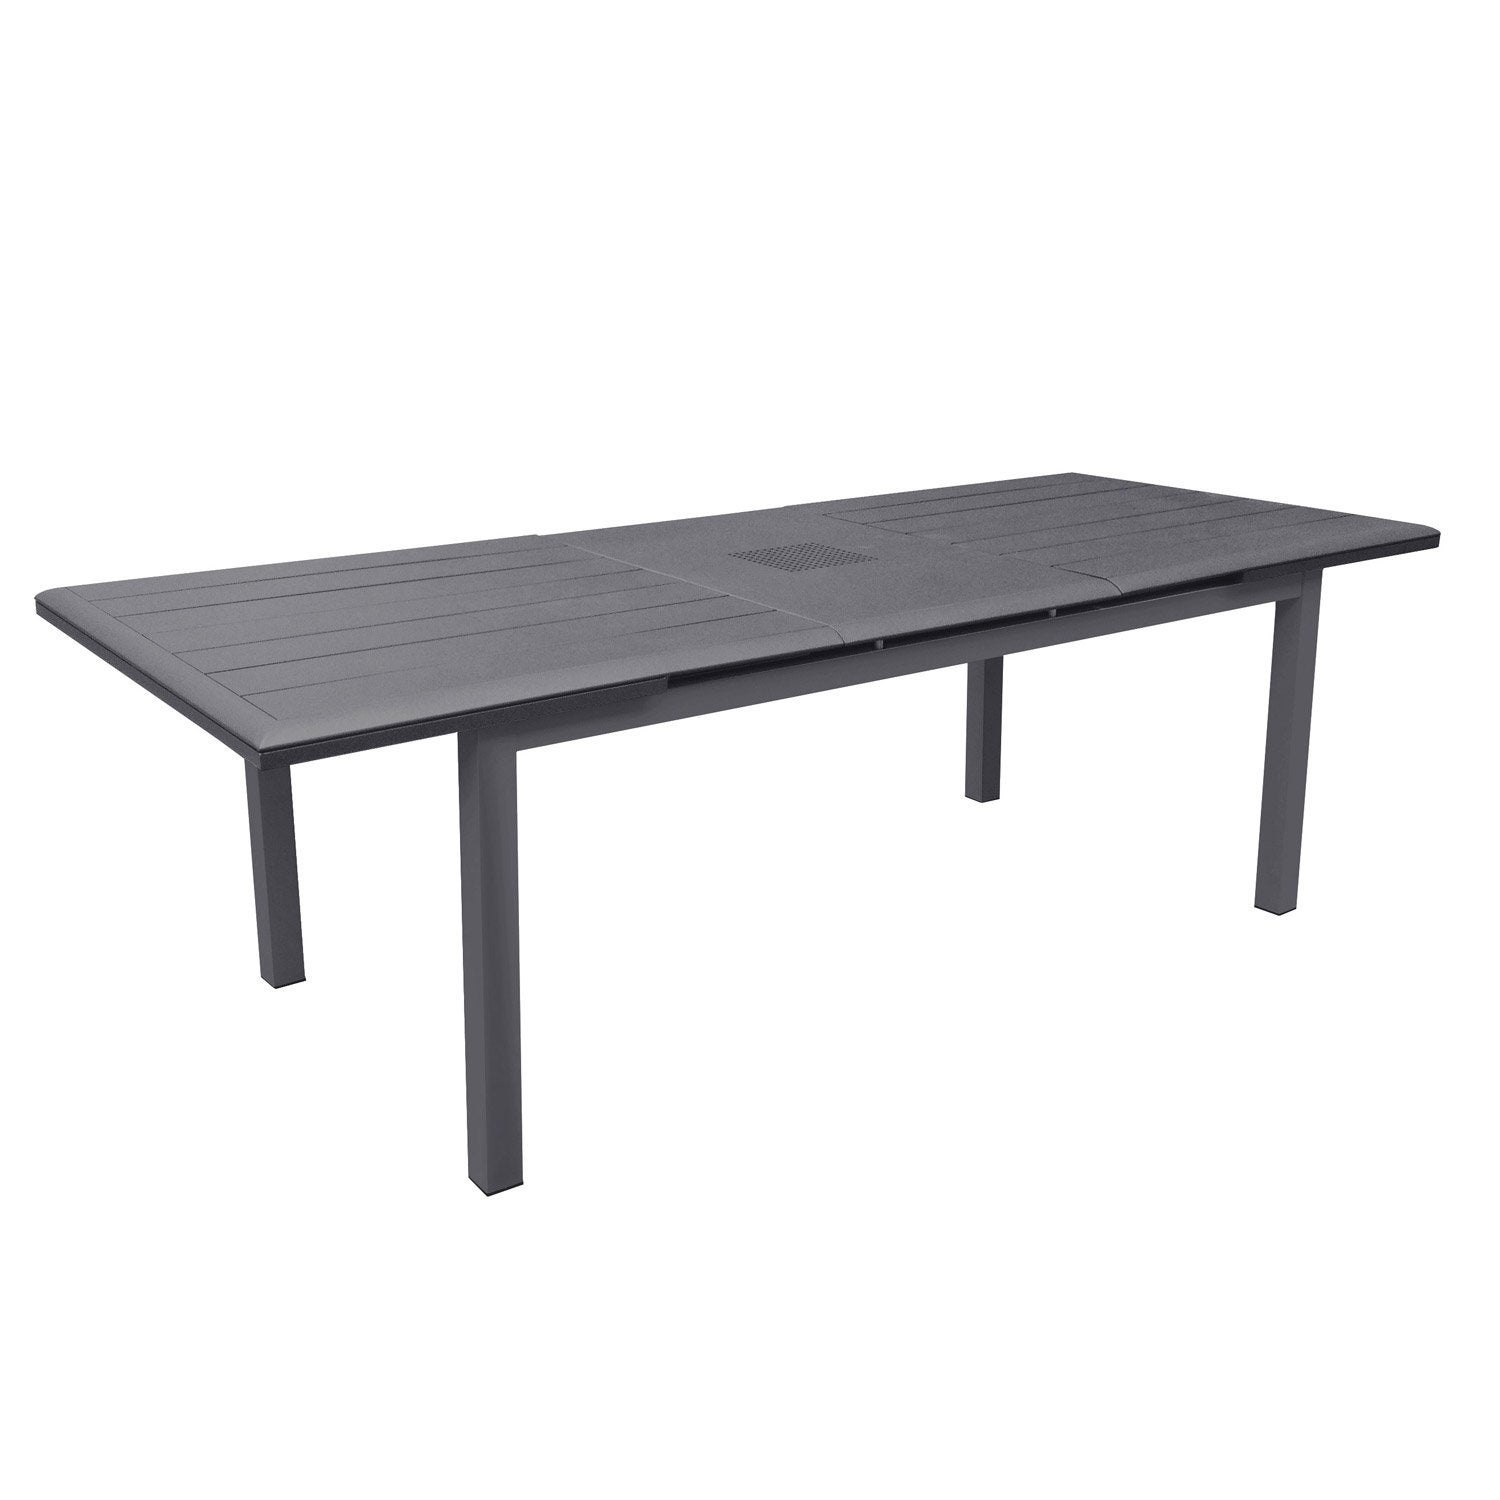 Table de jardin louisiane rectangulaire gris 6 8 personnes for Table de cuisine pliante leroy merlin